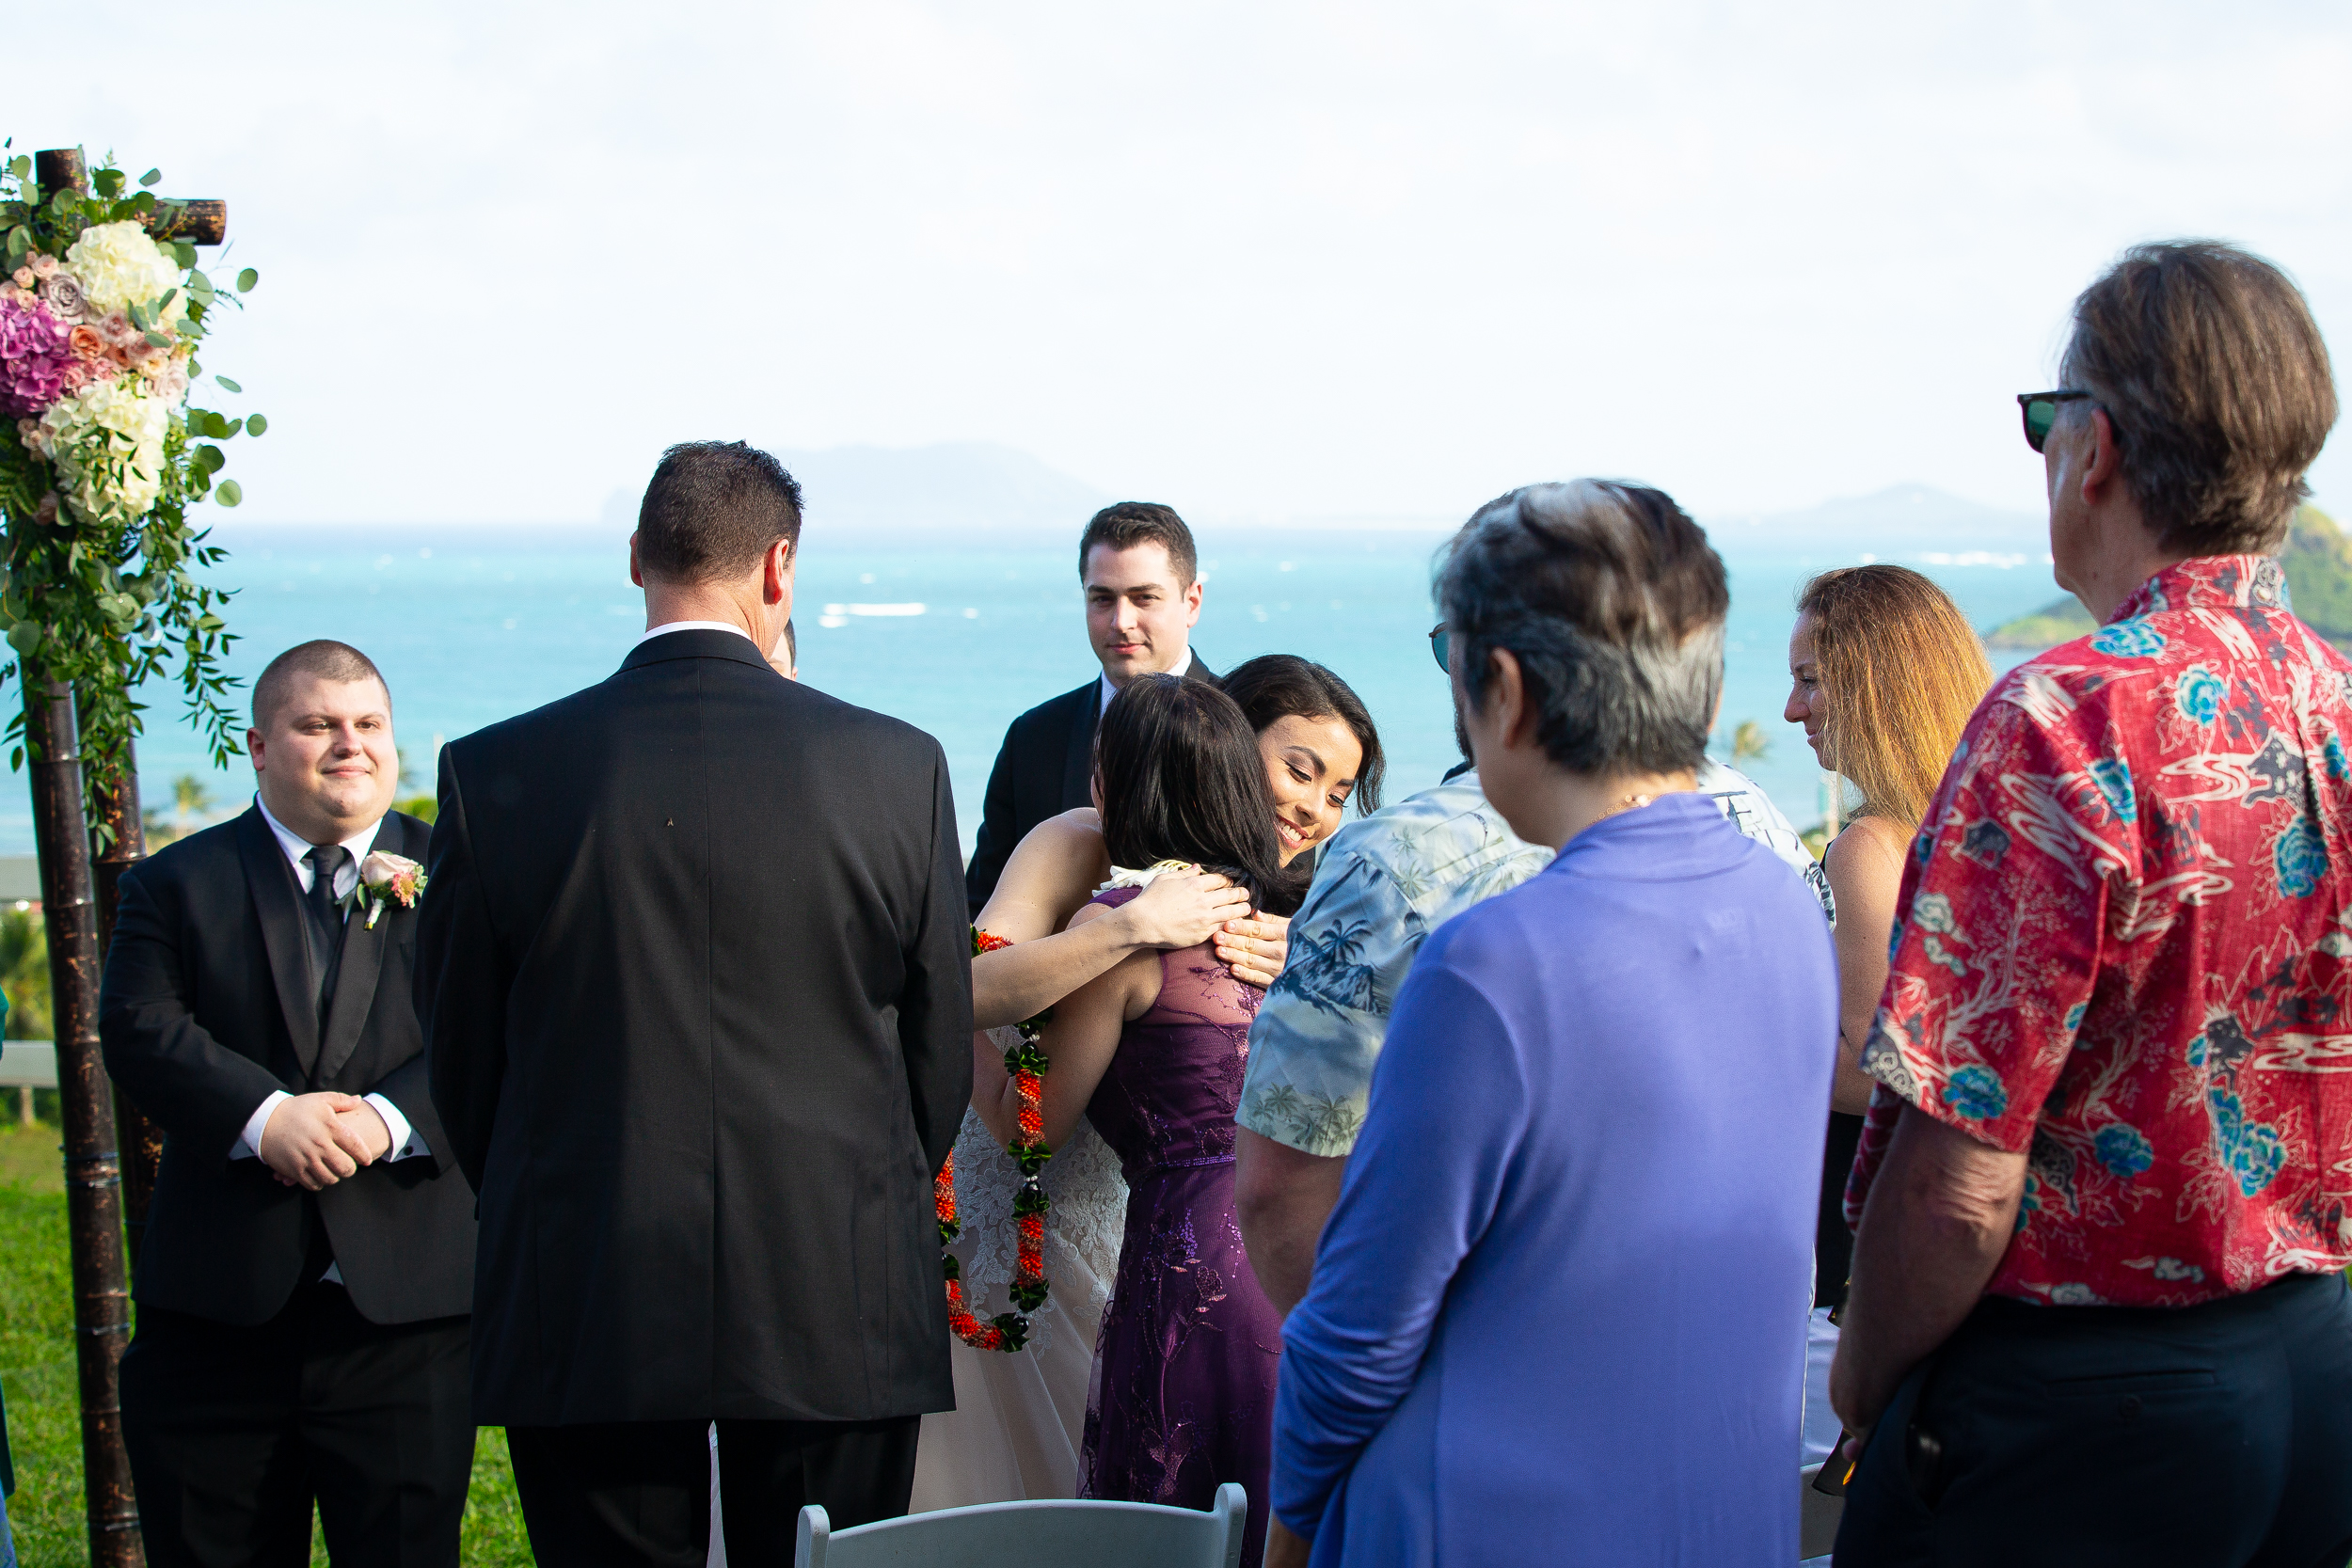 Kualoa Ranch Wedding in Hawaii -37.jpg